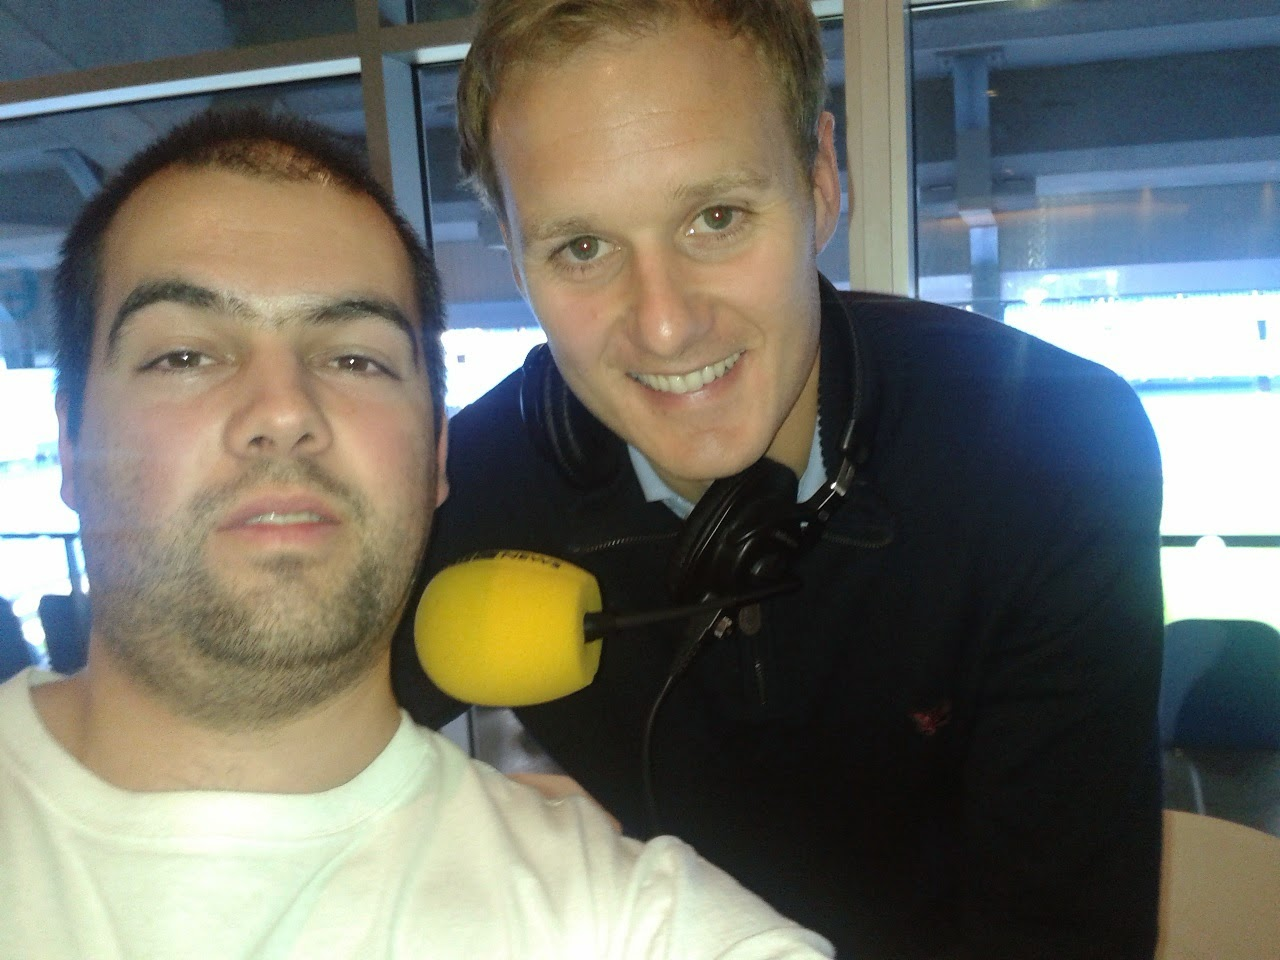 Pierateer RAS and fellow football pie fan Dan Walker